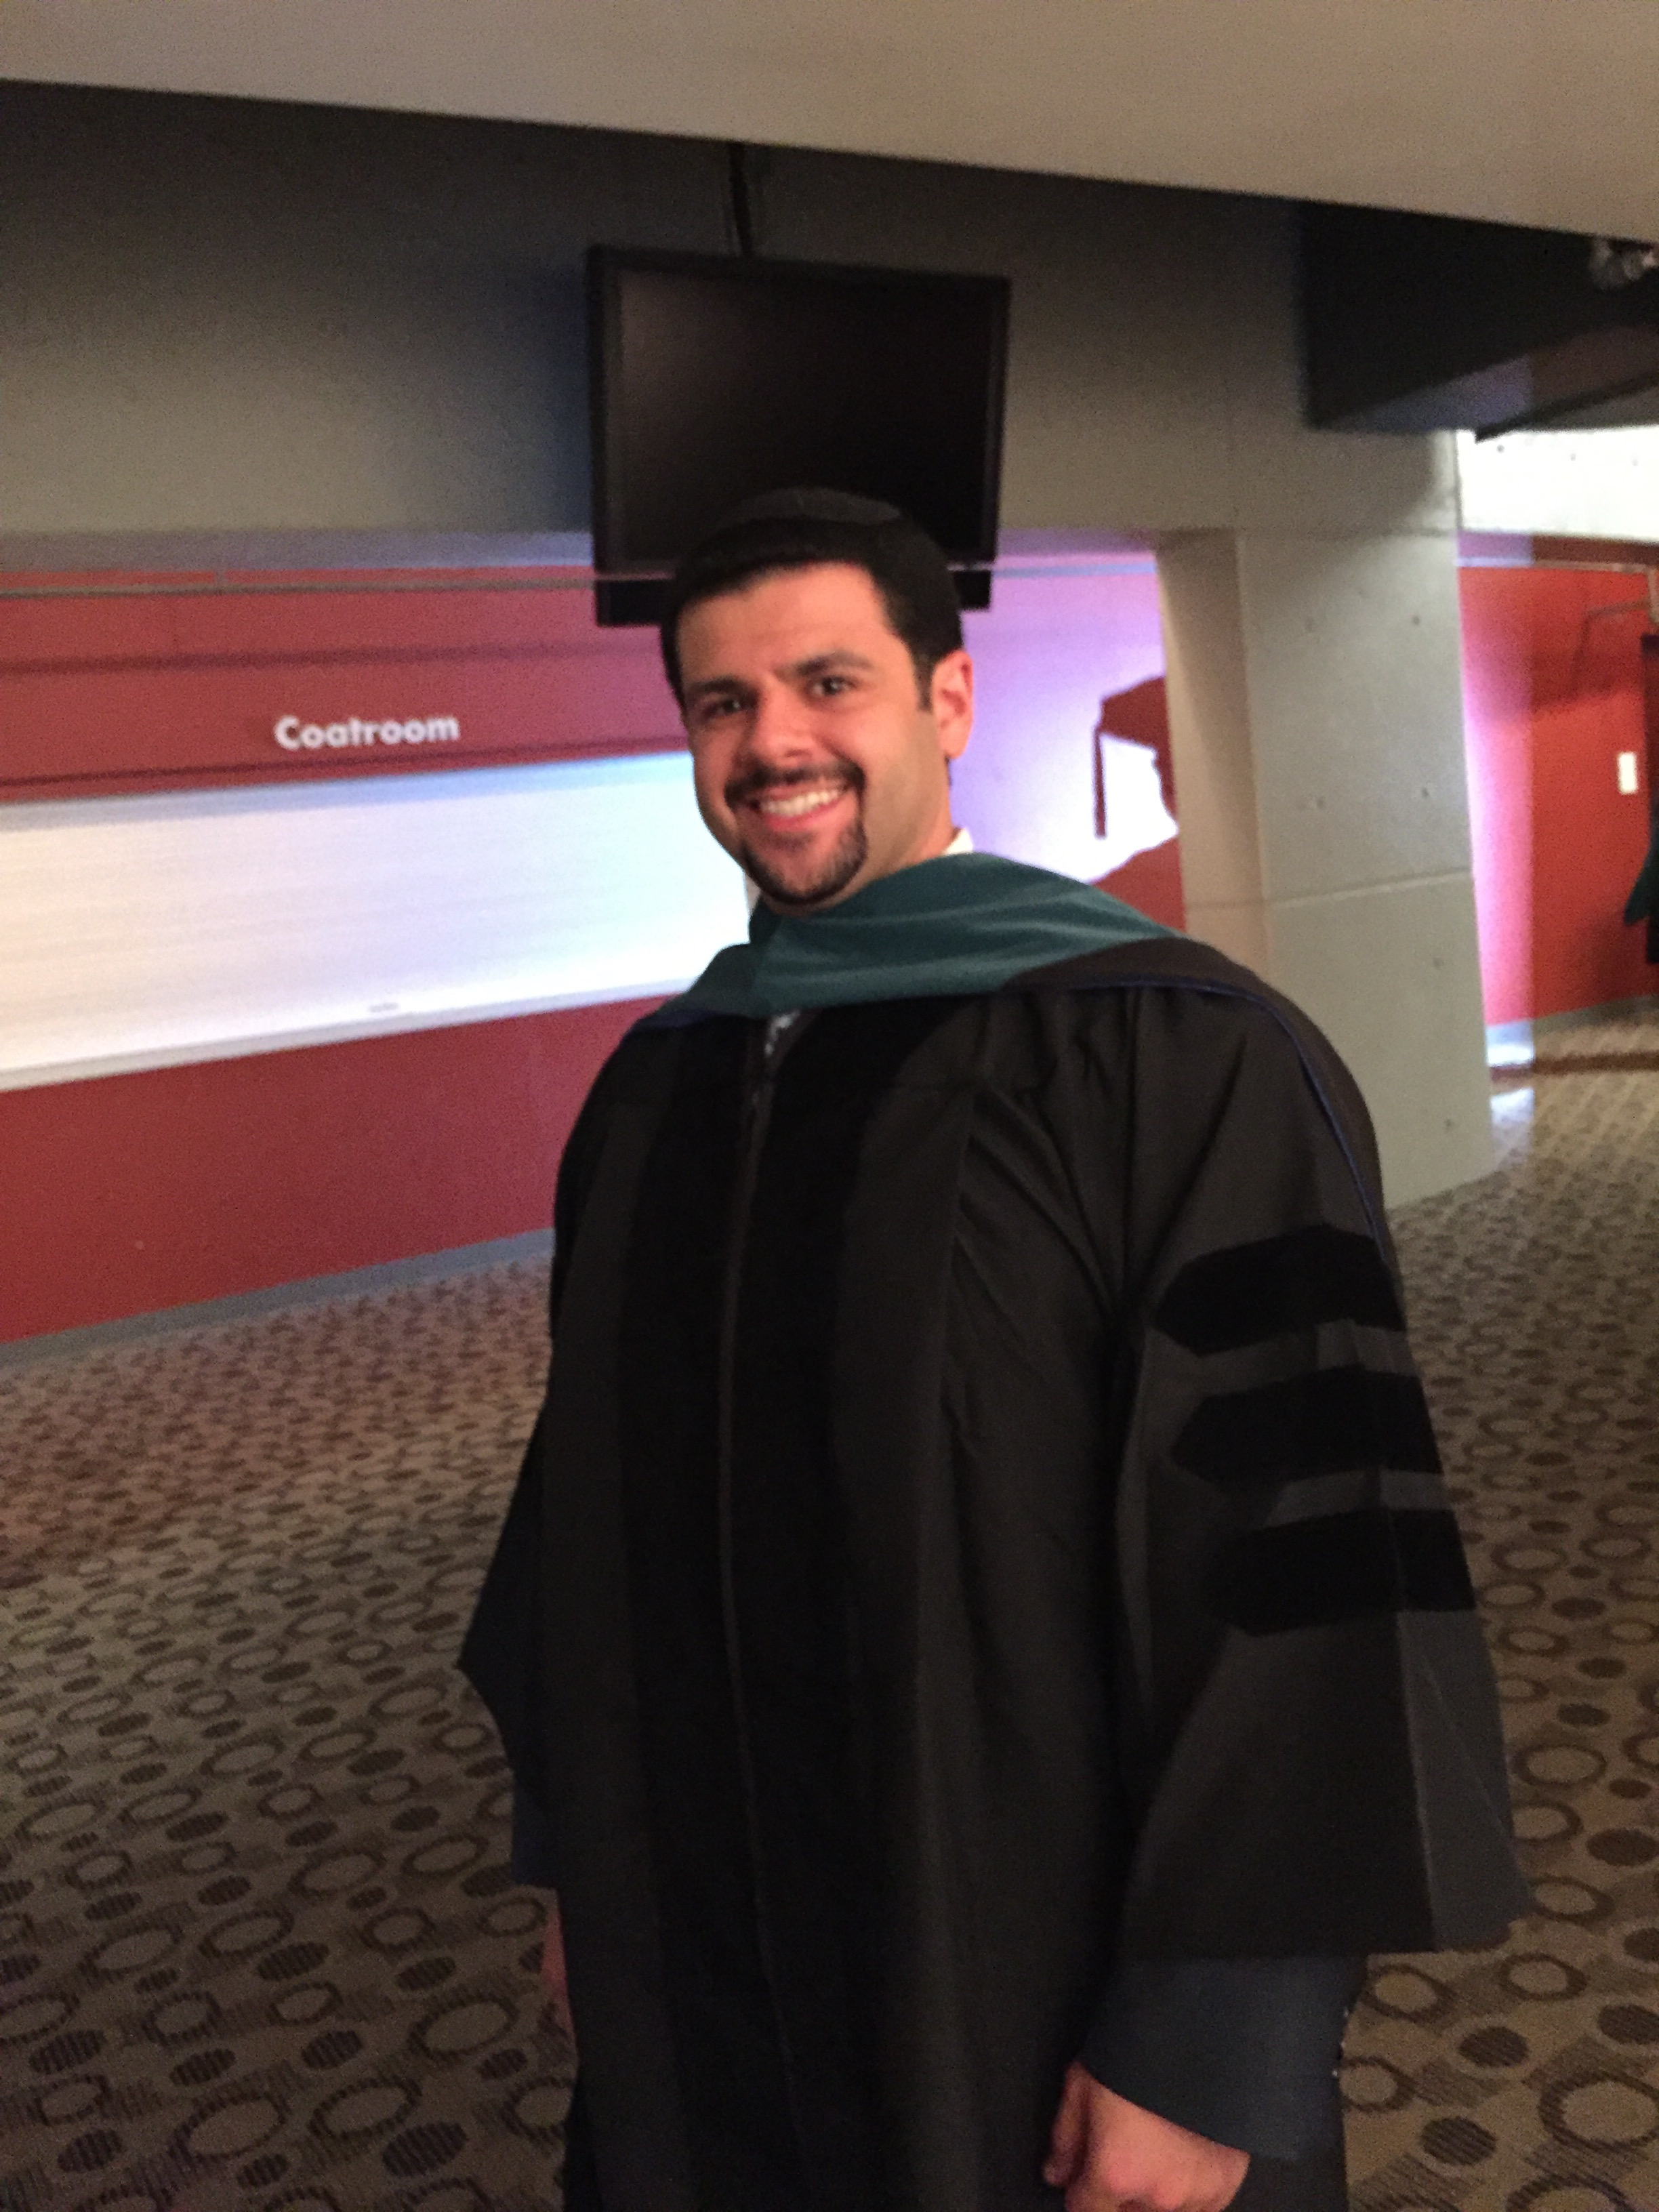 Daniel Friedman, class of 2016, graduate of the School of Health Sciences Doctor of Physical Therapy Program